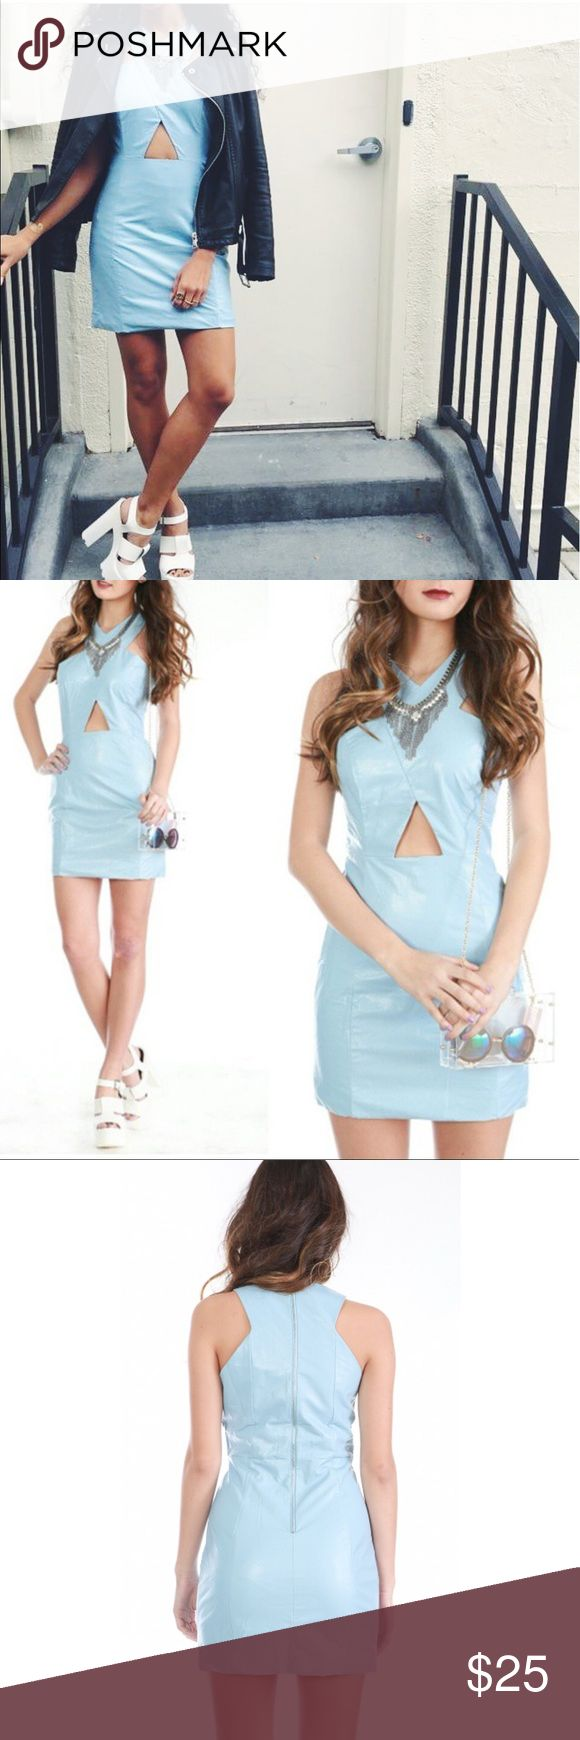 💙HP💙Vegan Leather Sky Blue Mini Dress💙 S, L ✨Re:named sky blue vegan leather mini dress✨ new! 🔹body con fitted  🔹silver metal zipper on back 🔹fully lined 🔹cut out detailing -size runs true to size ✔️Bundle to save 20% ✔️Accepts reasonable offers 💕 Urban Outfitters Dresses Mini